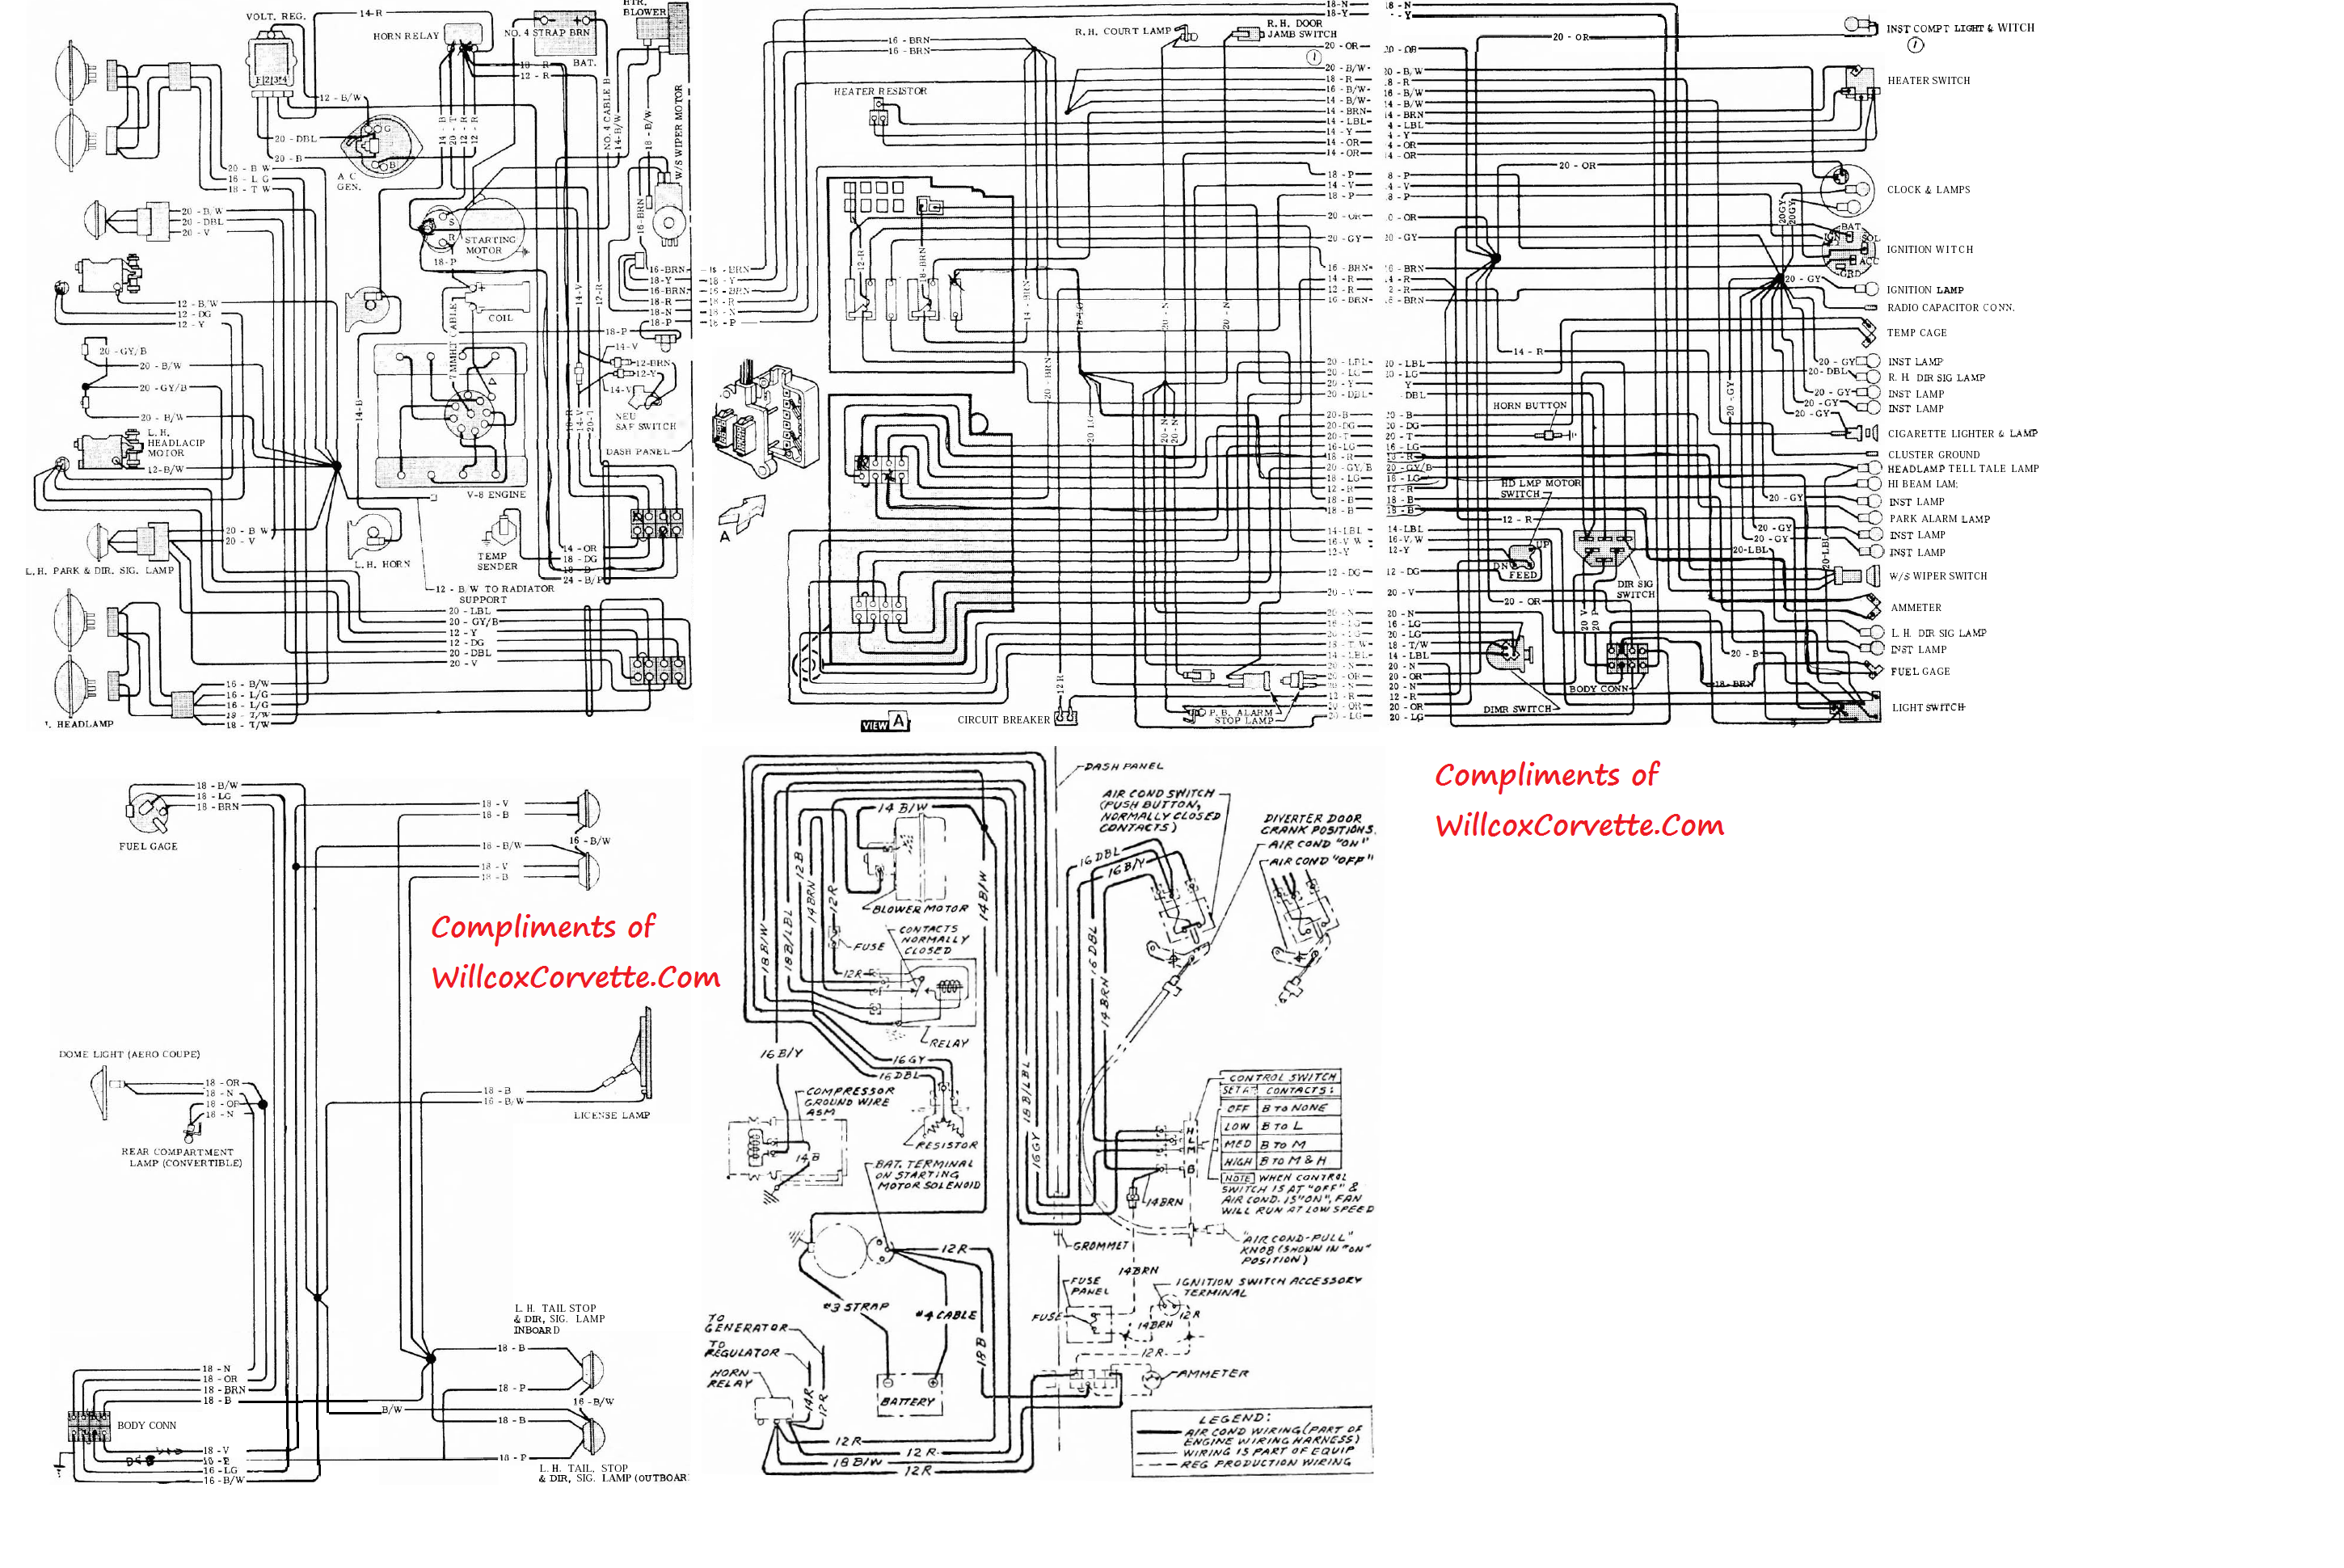 1963 Corvette Tracer Wiring Diagram Tracer Schematic 1963 corvette tracer wiring diagram tracer schematic willcox 1977 corvette wiring diagram at gsmportal.co